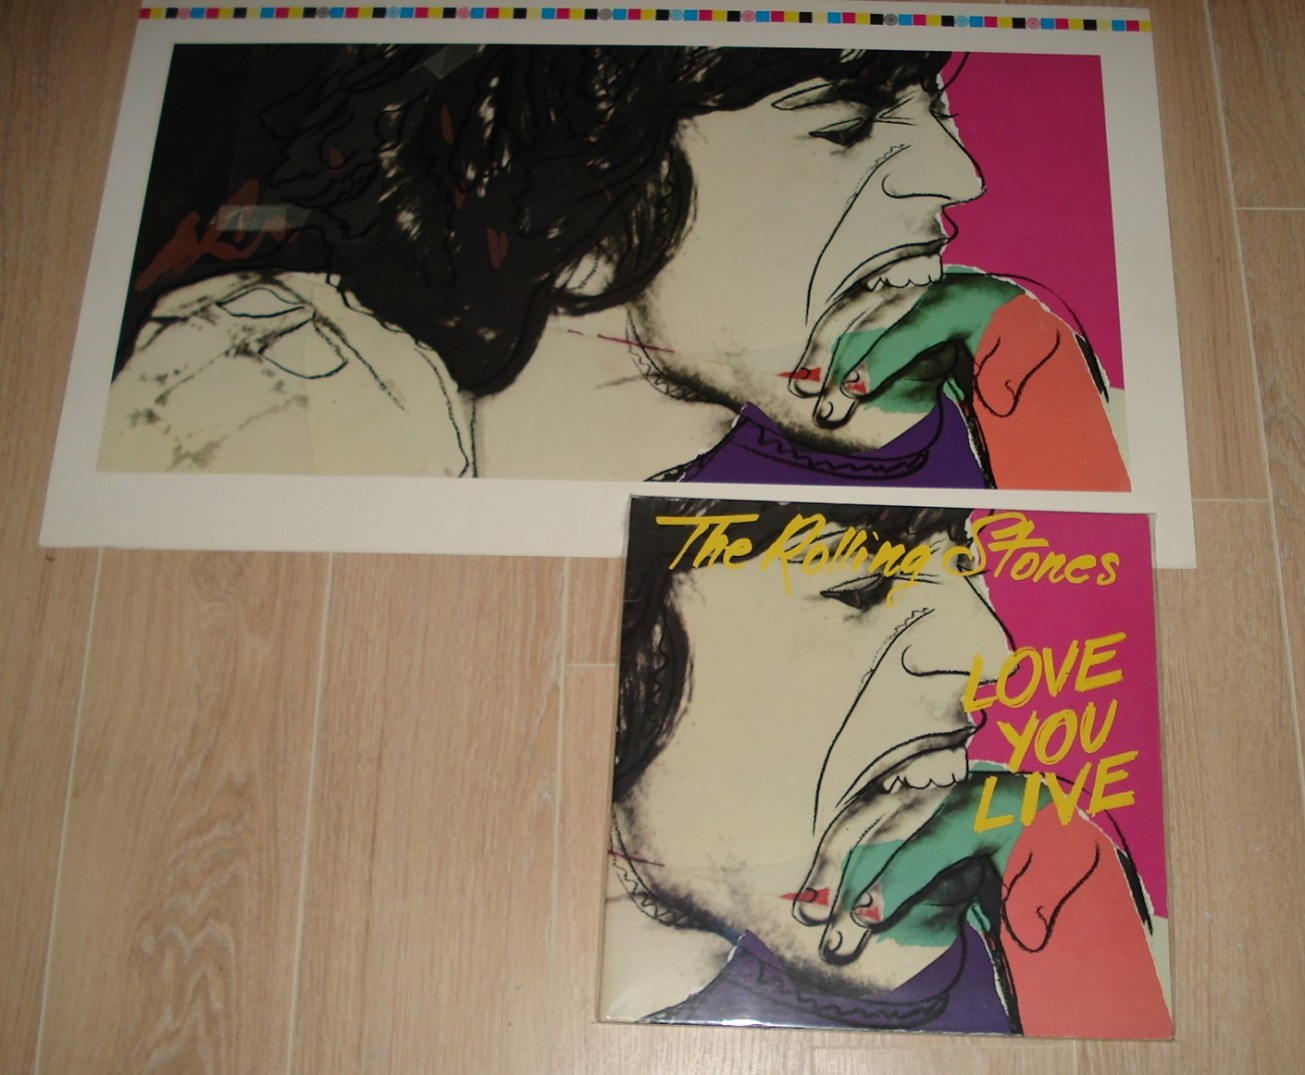 warhol-jagger-love-you-live-proof-2